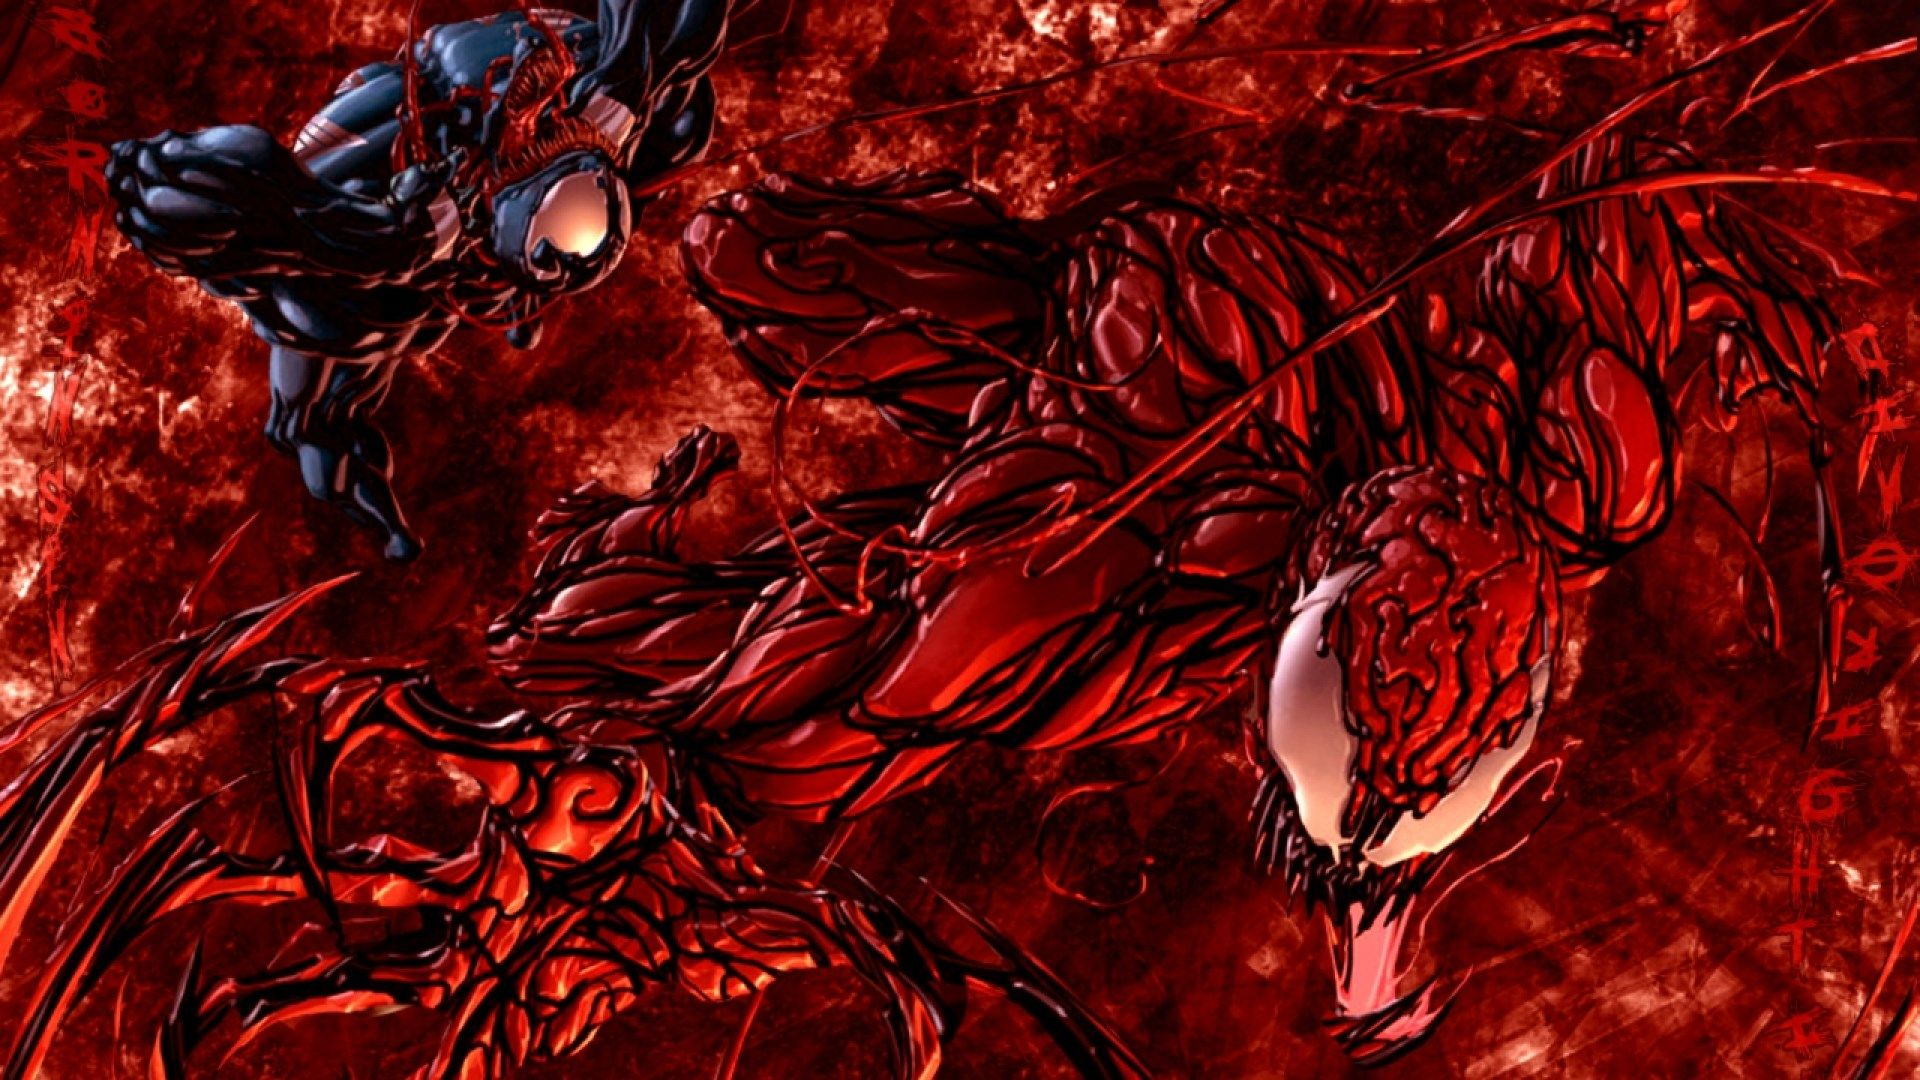 Widescreen Carnage Carnage Marvel Carnage Creative Graphics